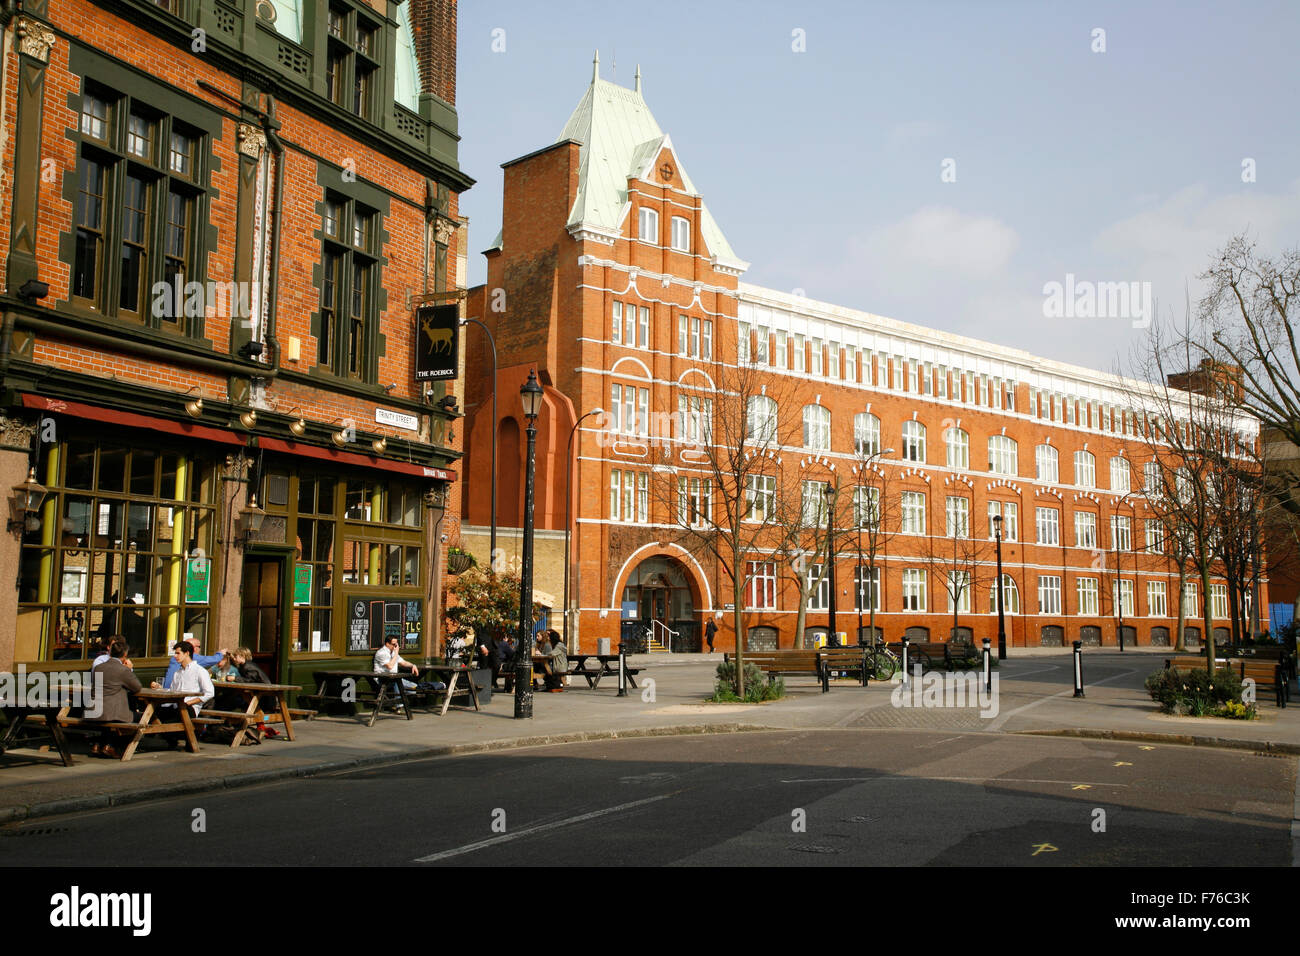 Roebuck pub on Trinity Street and Great Dover Street Apartments, The Borough, London, UK - Stock Image